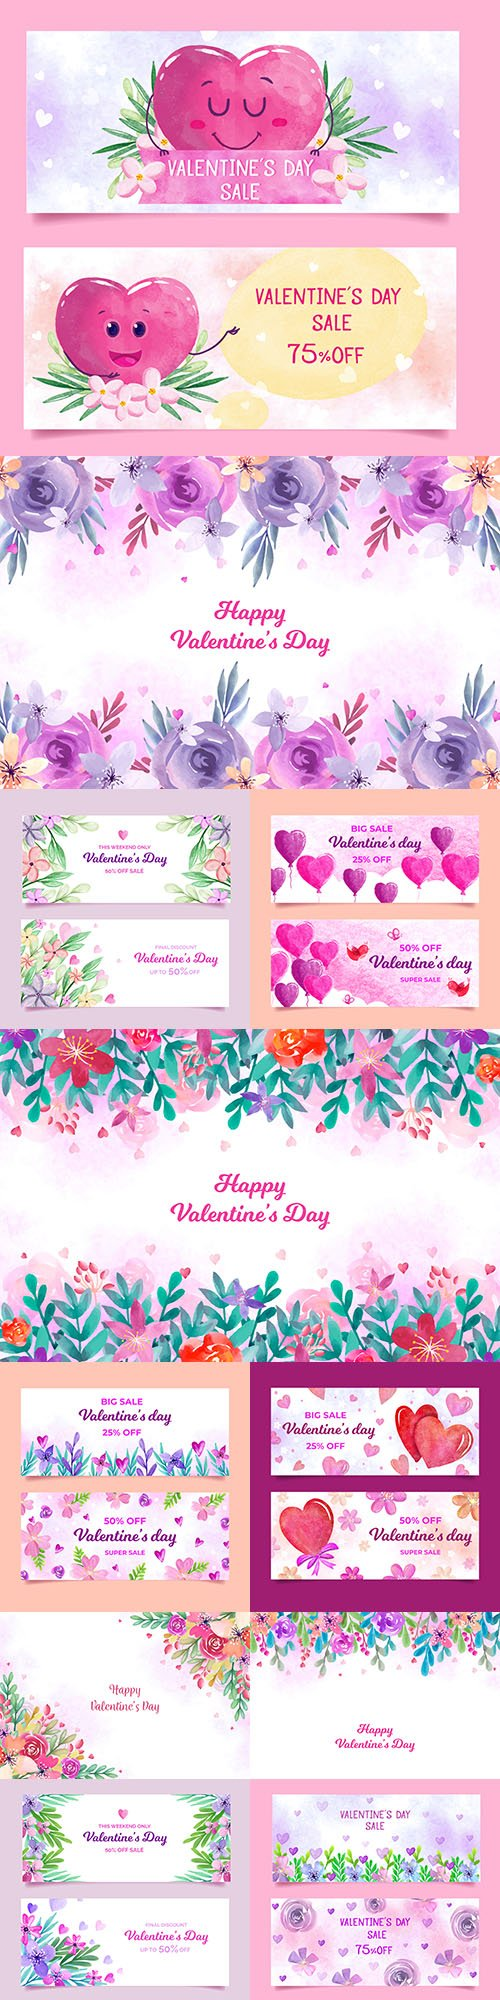 Valentine's Day background and banner watercolor design